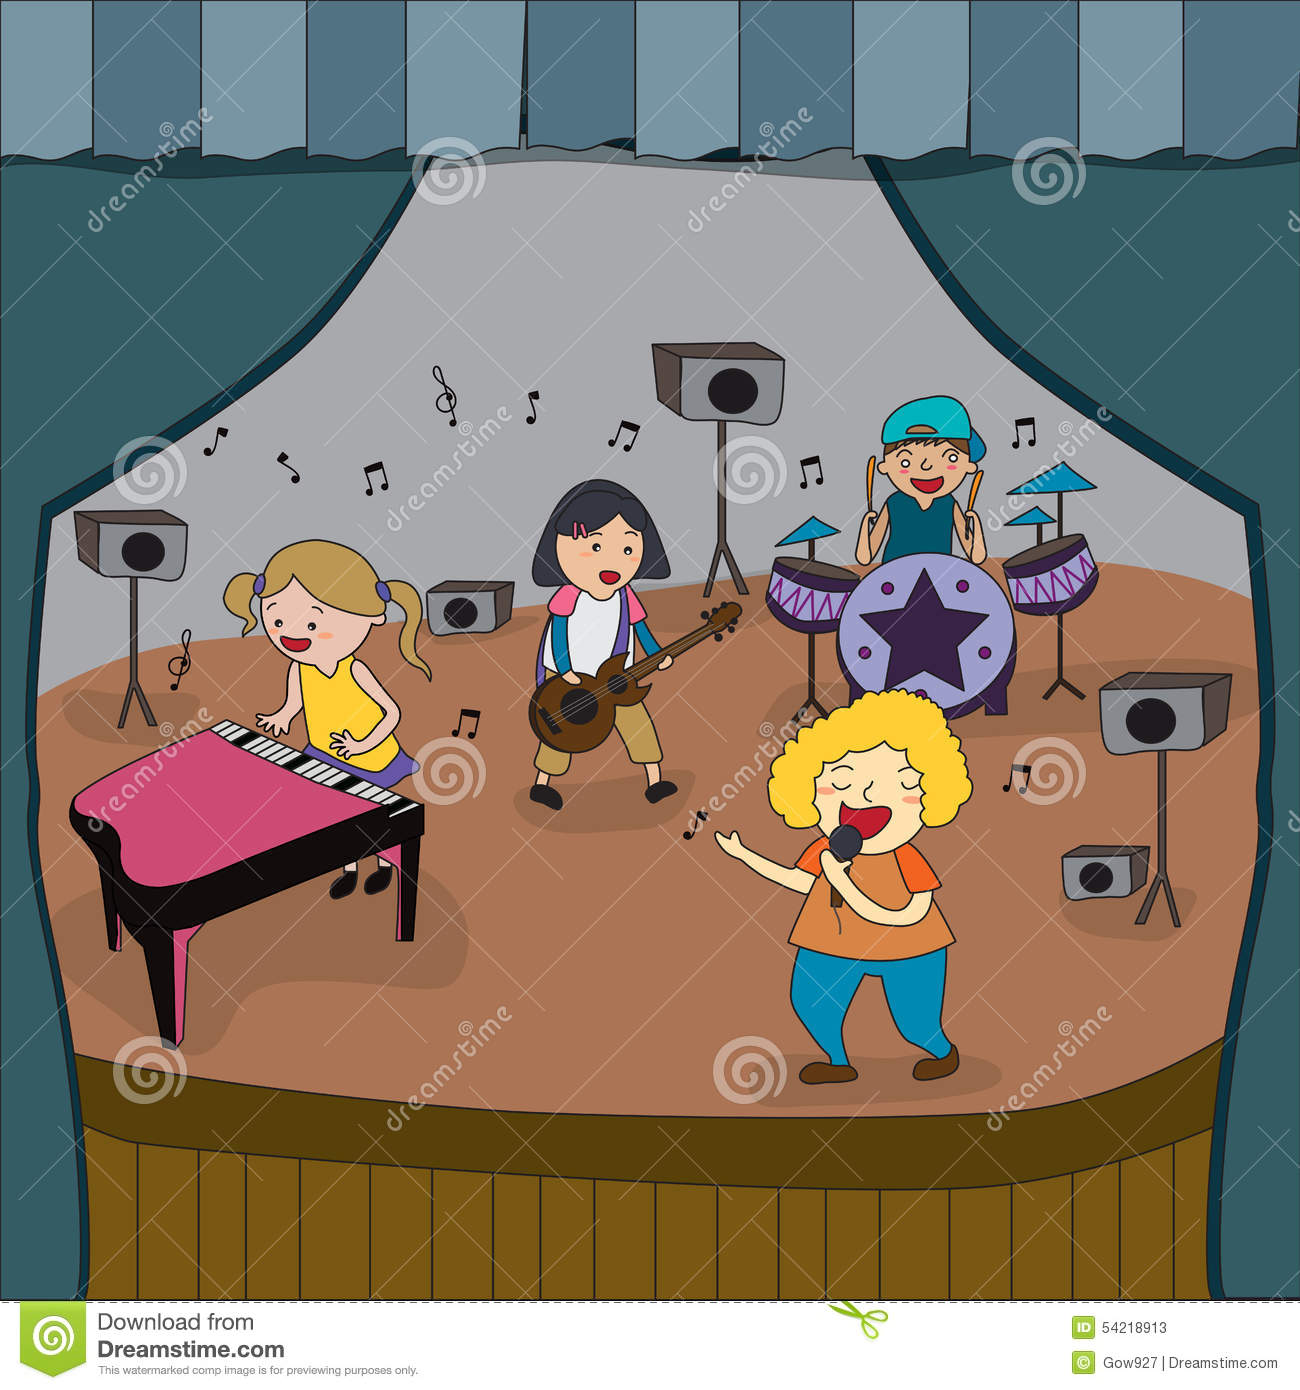 Cartoon Children Band Is Playing Concert On Stage In School Fair Stock Vector Image 54218913